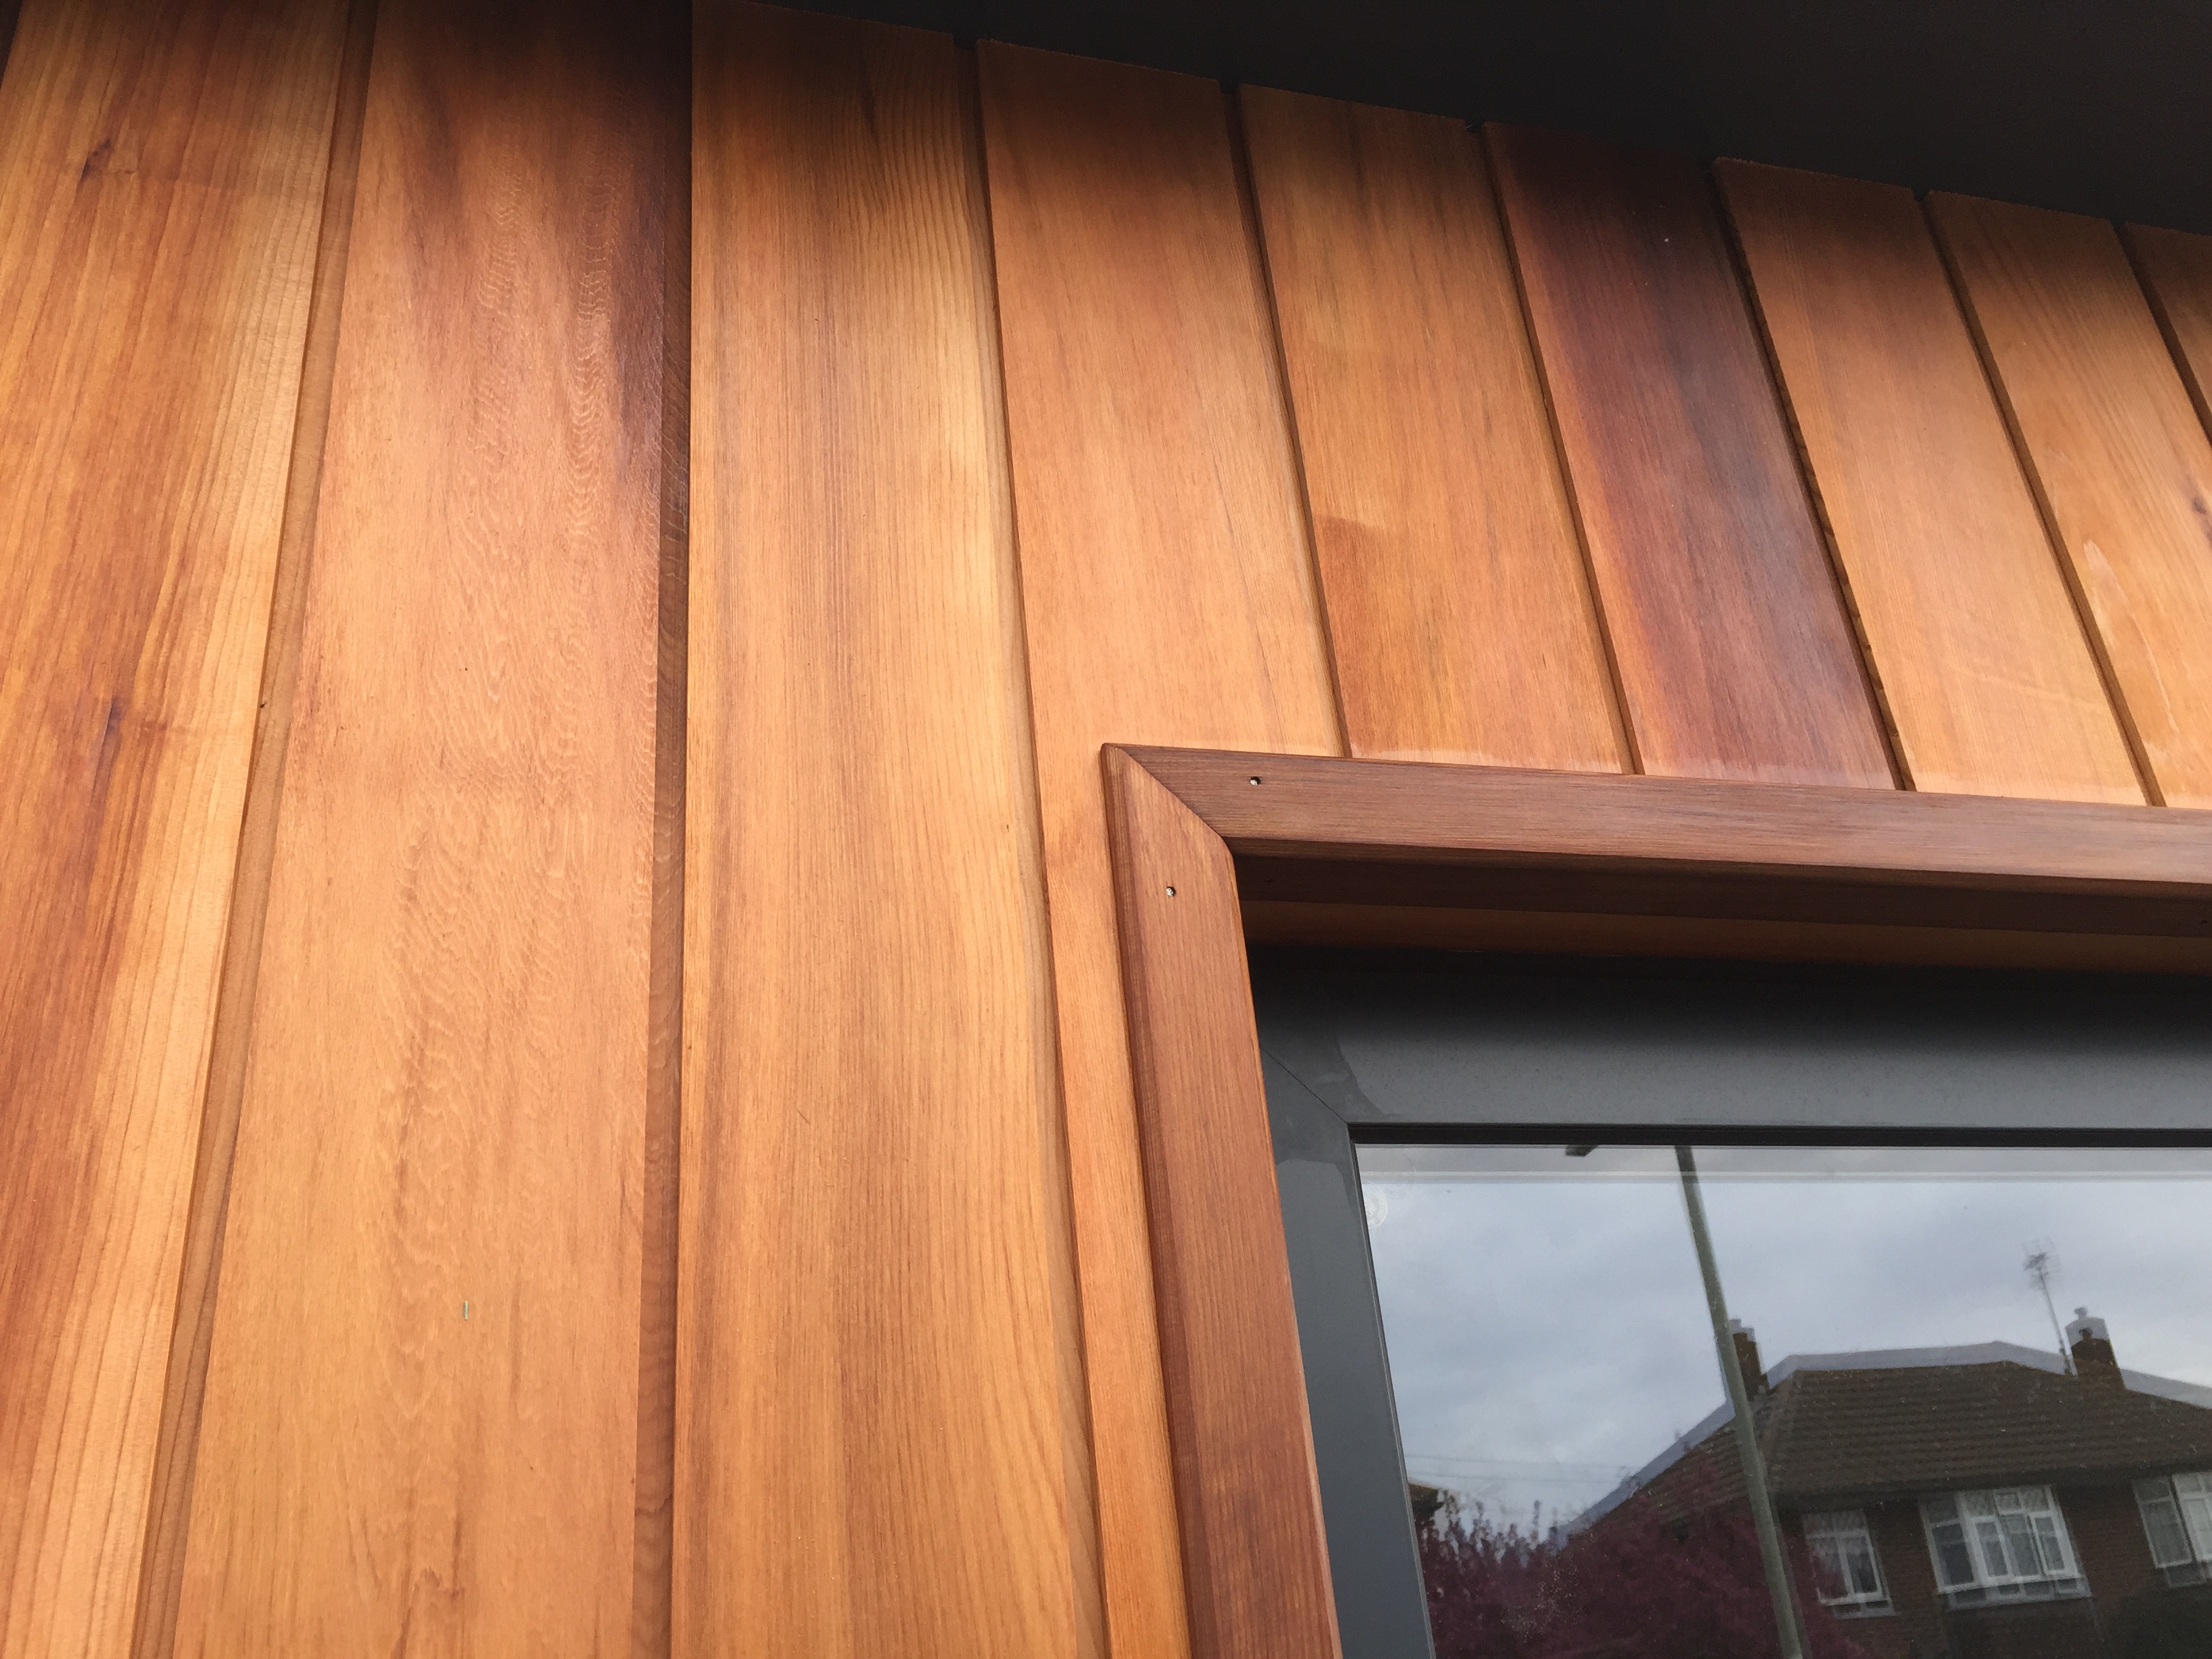 Western Red Cedar 45x45mm L Section